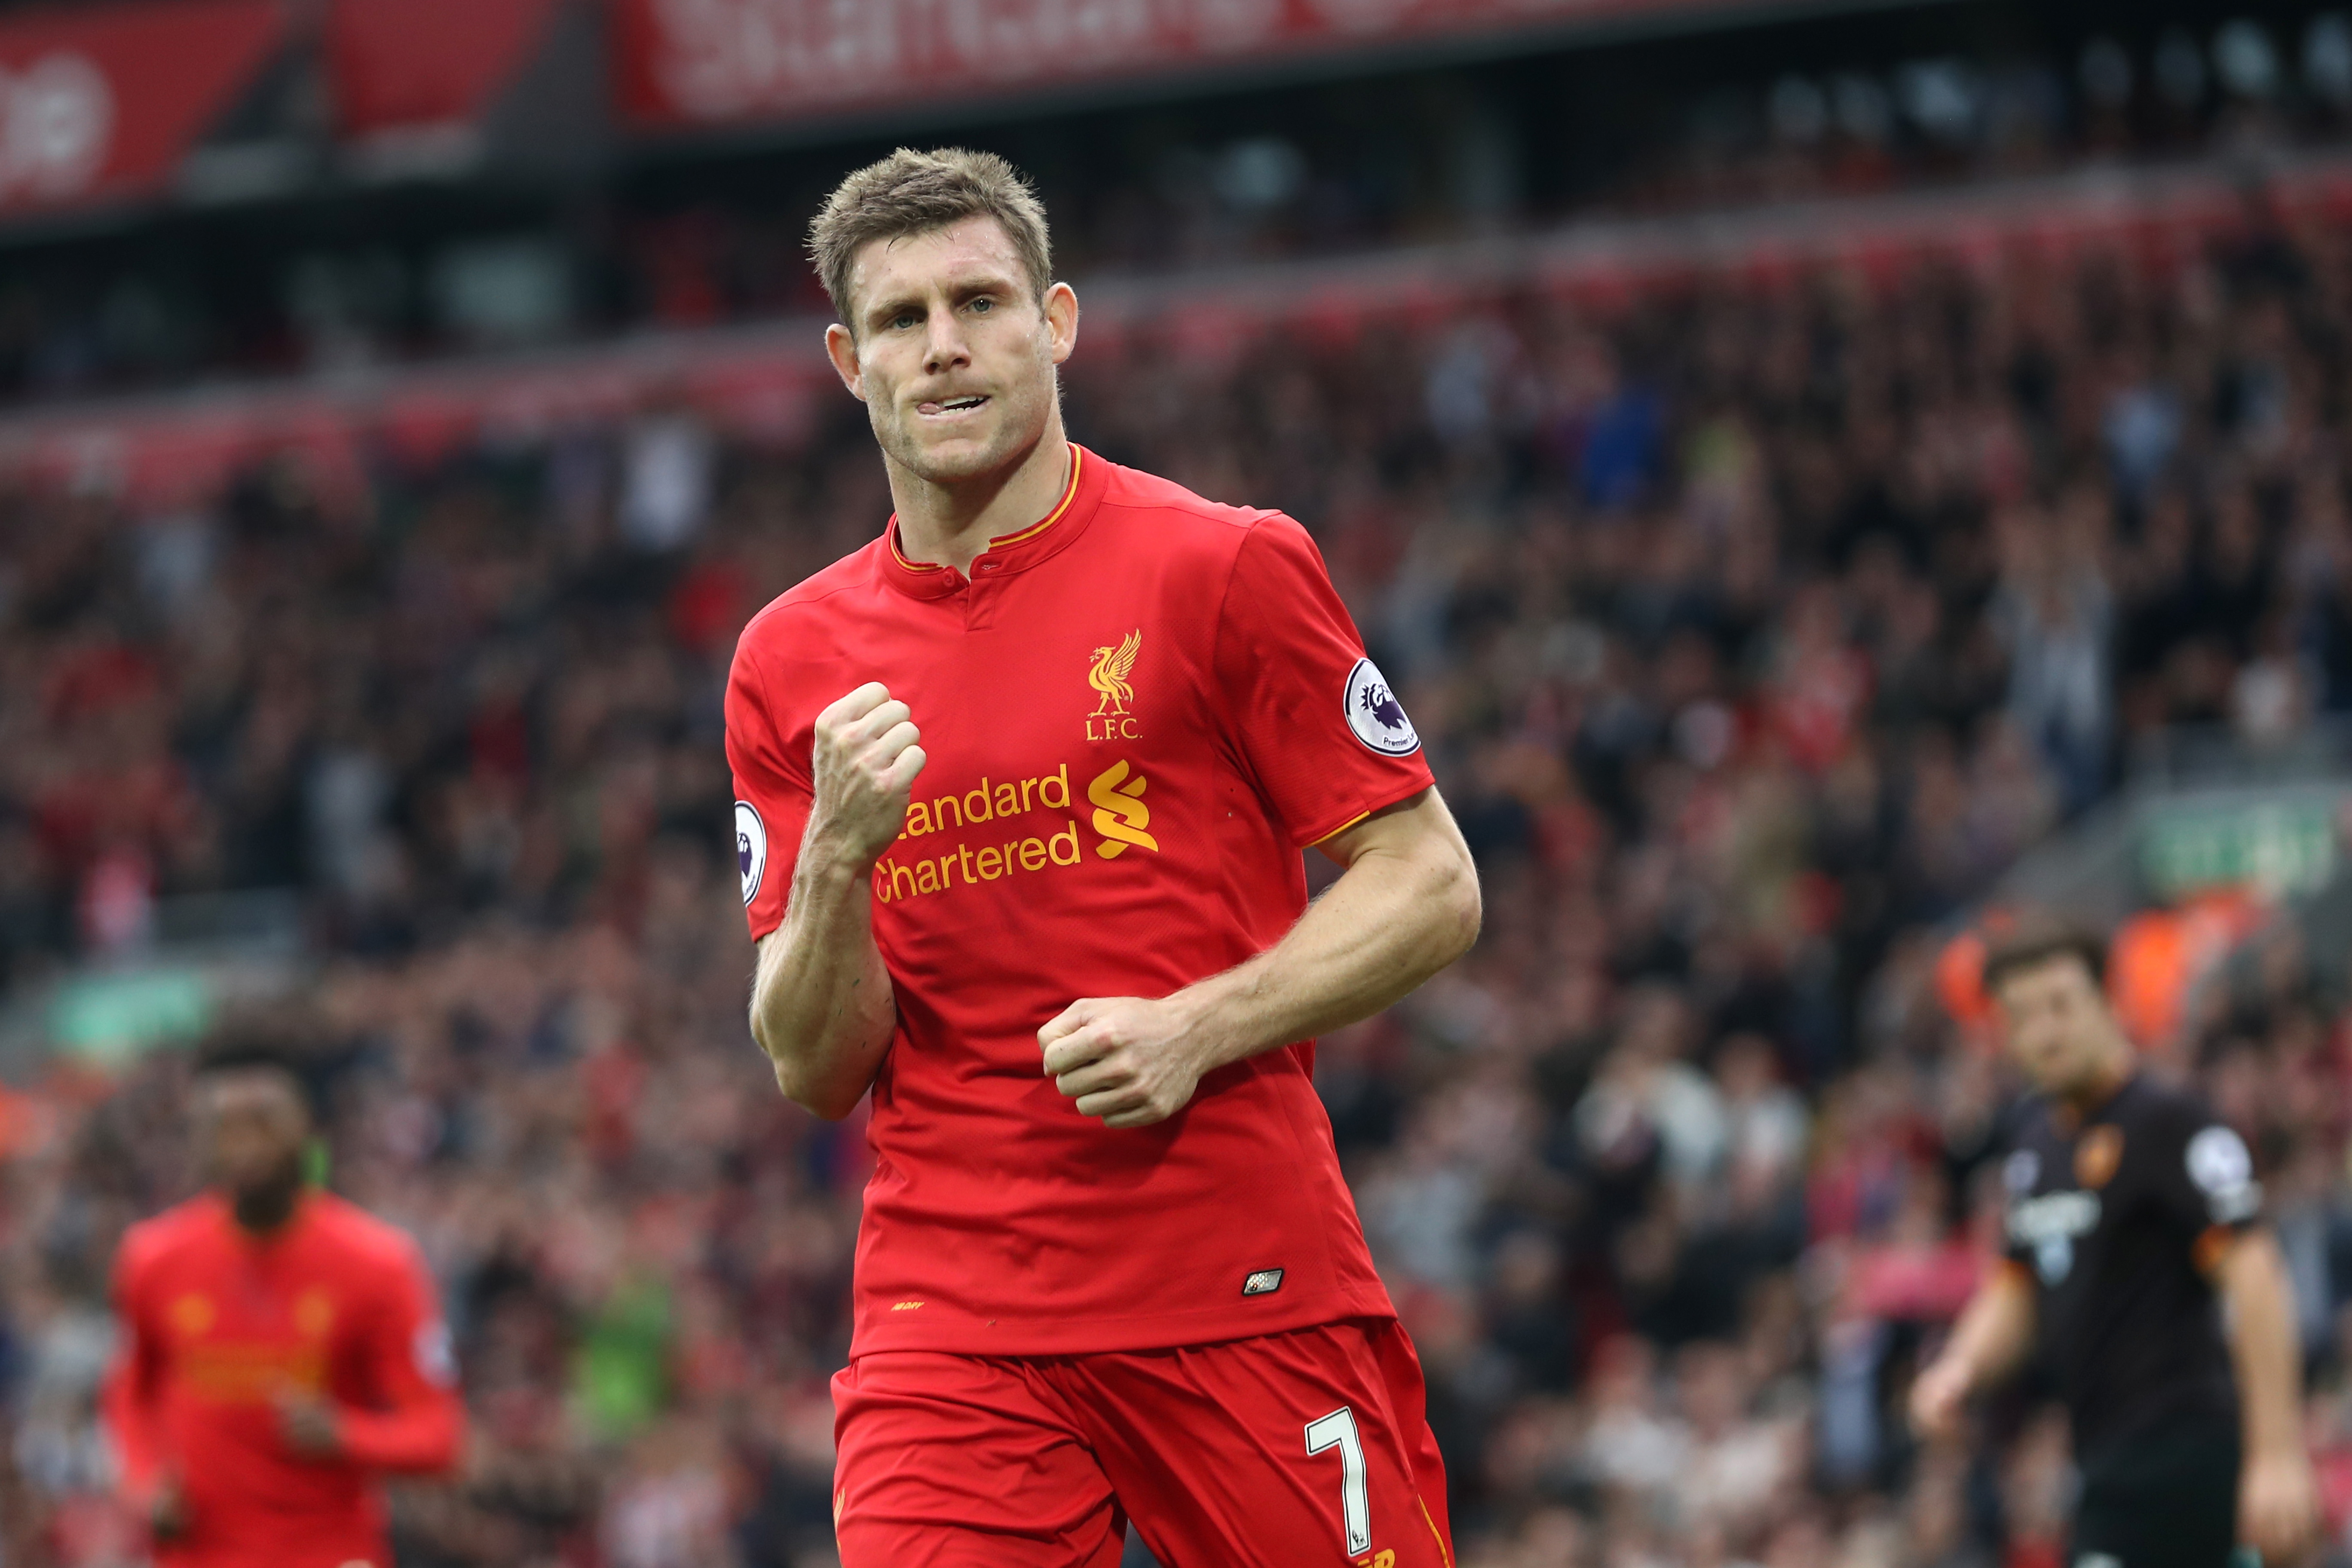 Liverpool complete £10m signing of defender Andy Robertson from Hull City